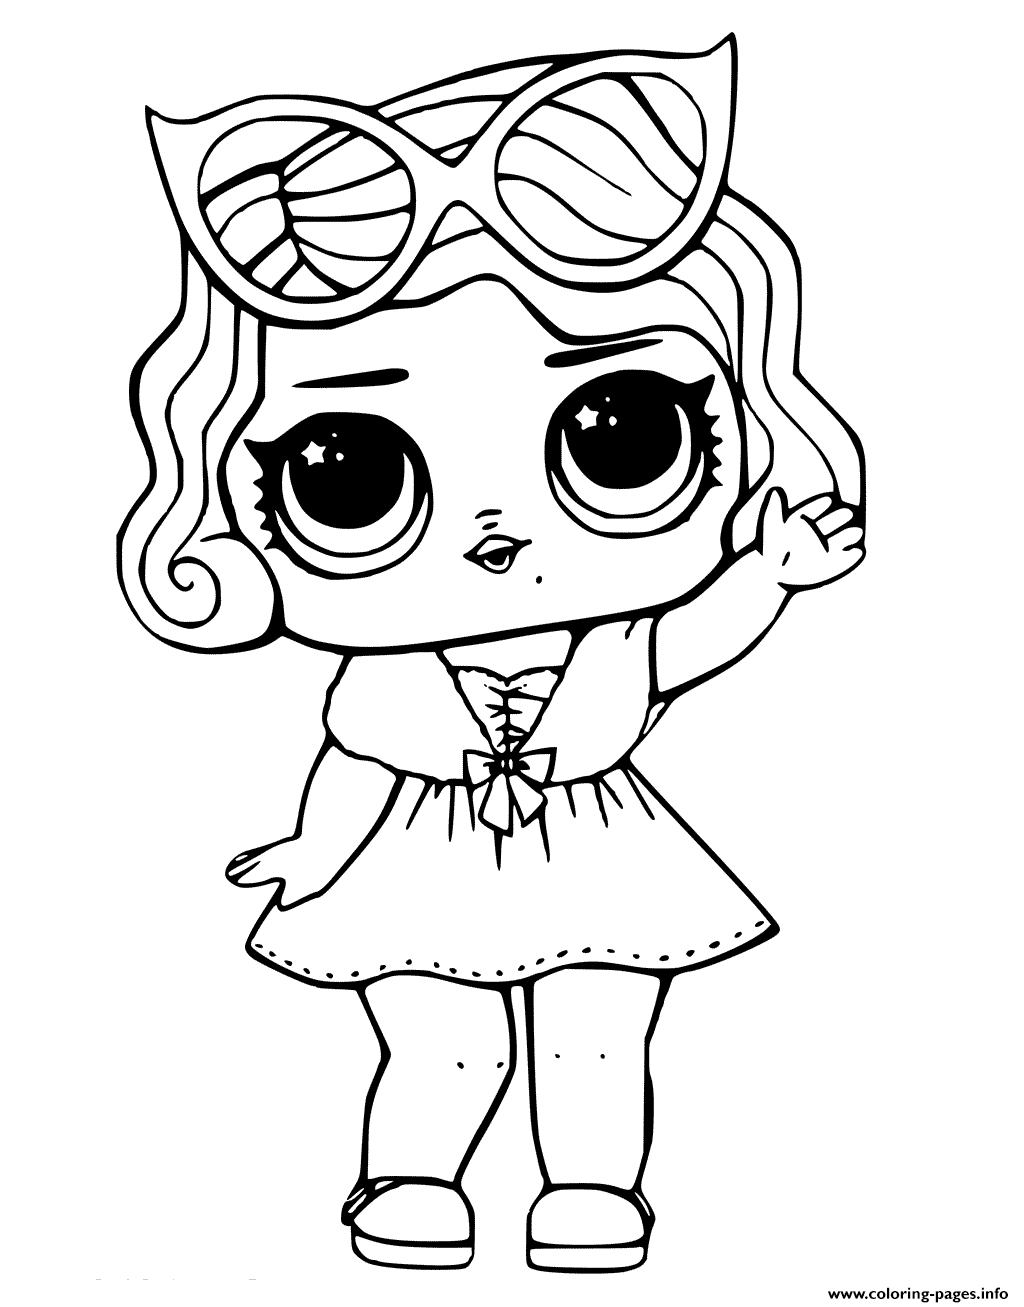 Leading Baby From Lol Surprise Printable Coloring Pages Book 20125 on Minecraft Coloring Pages